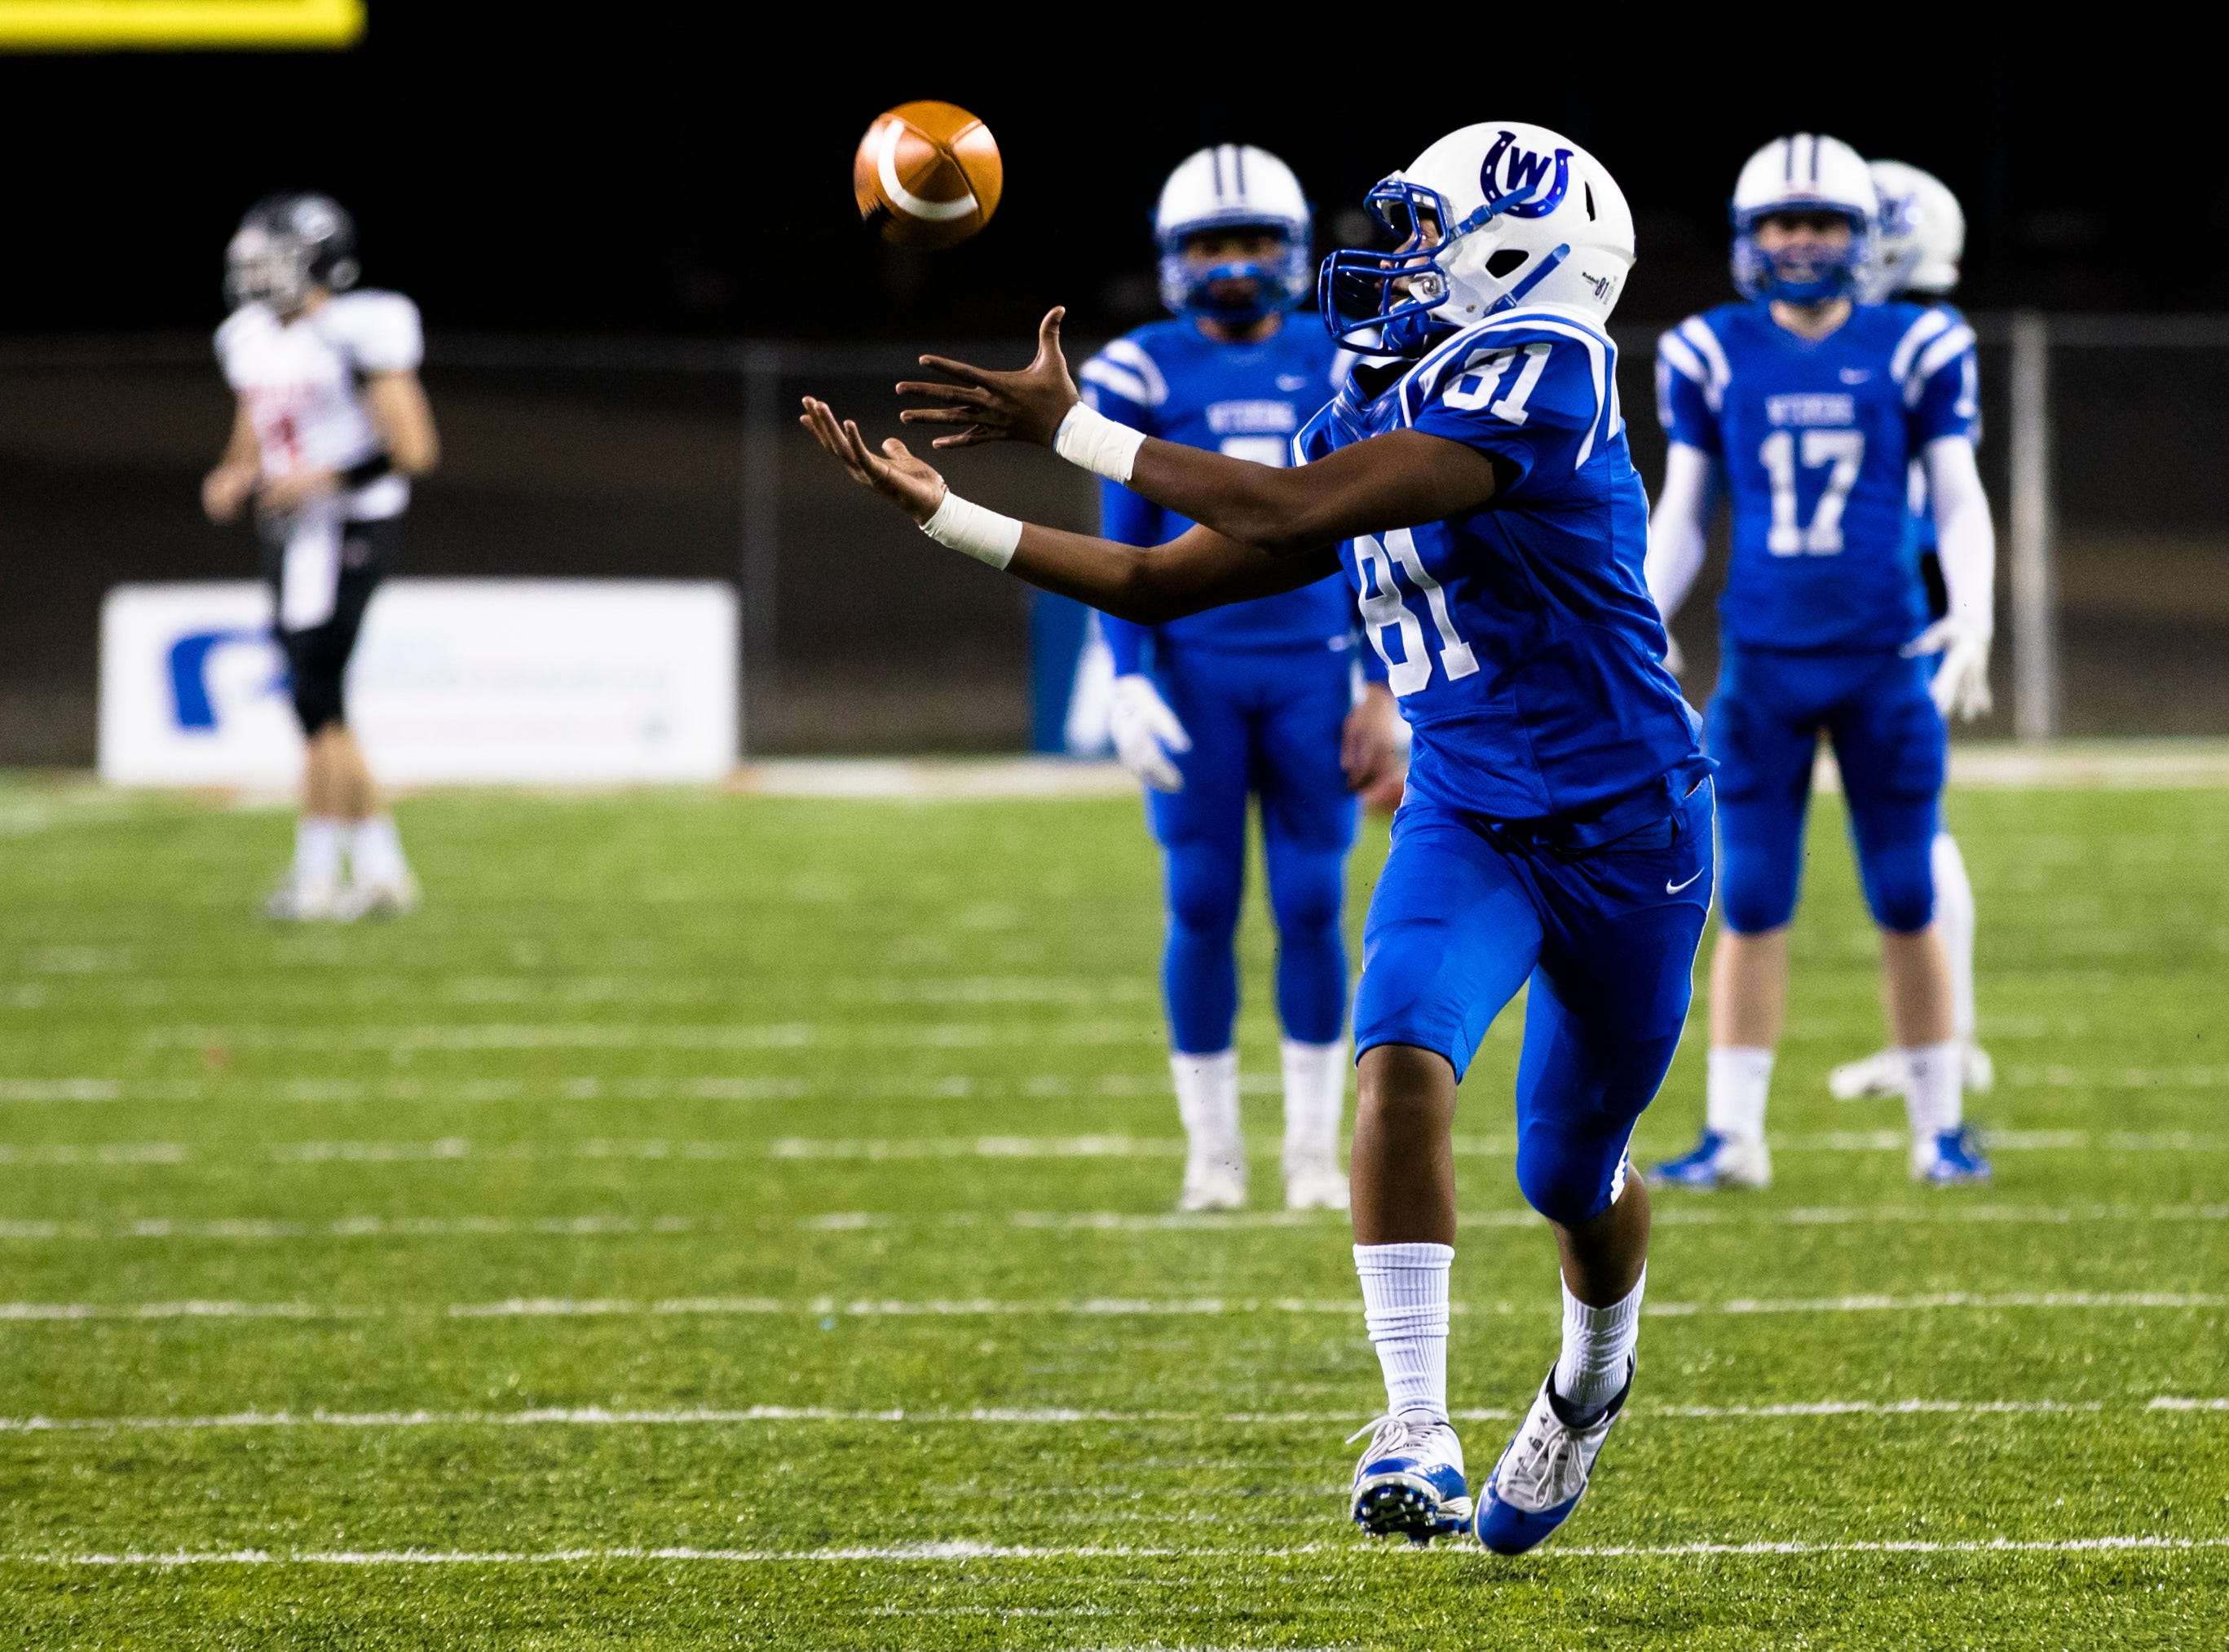 Wyoming's Isaiah Tidjani (81) catches a pass while warming up before the OHSAA Division IV State Championship football game between Wyoming and Girard on Saturday, Dec. 1, 2018, at Tom Benson Stadium in Canton.